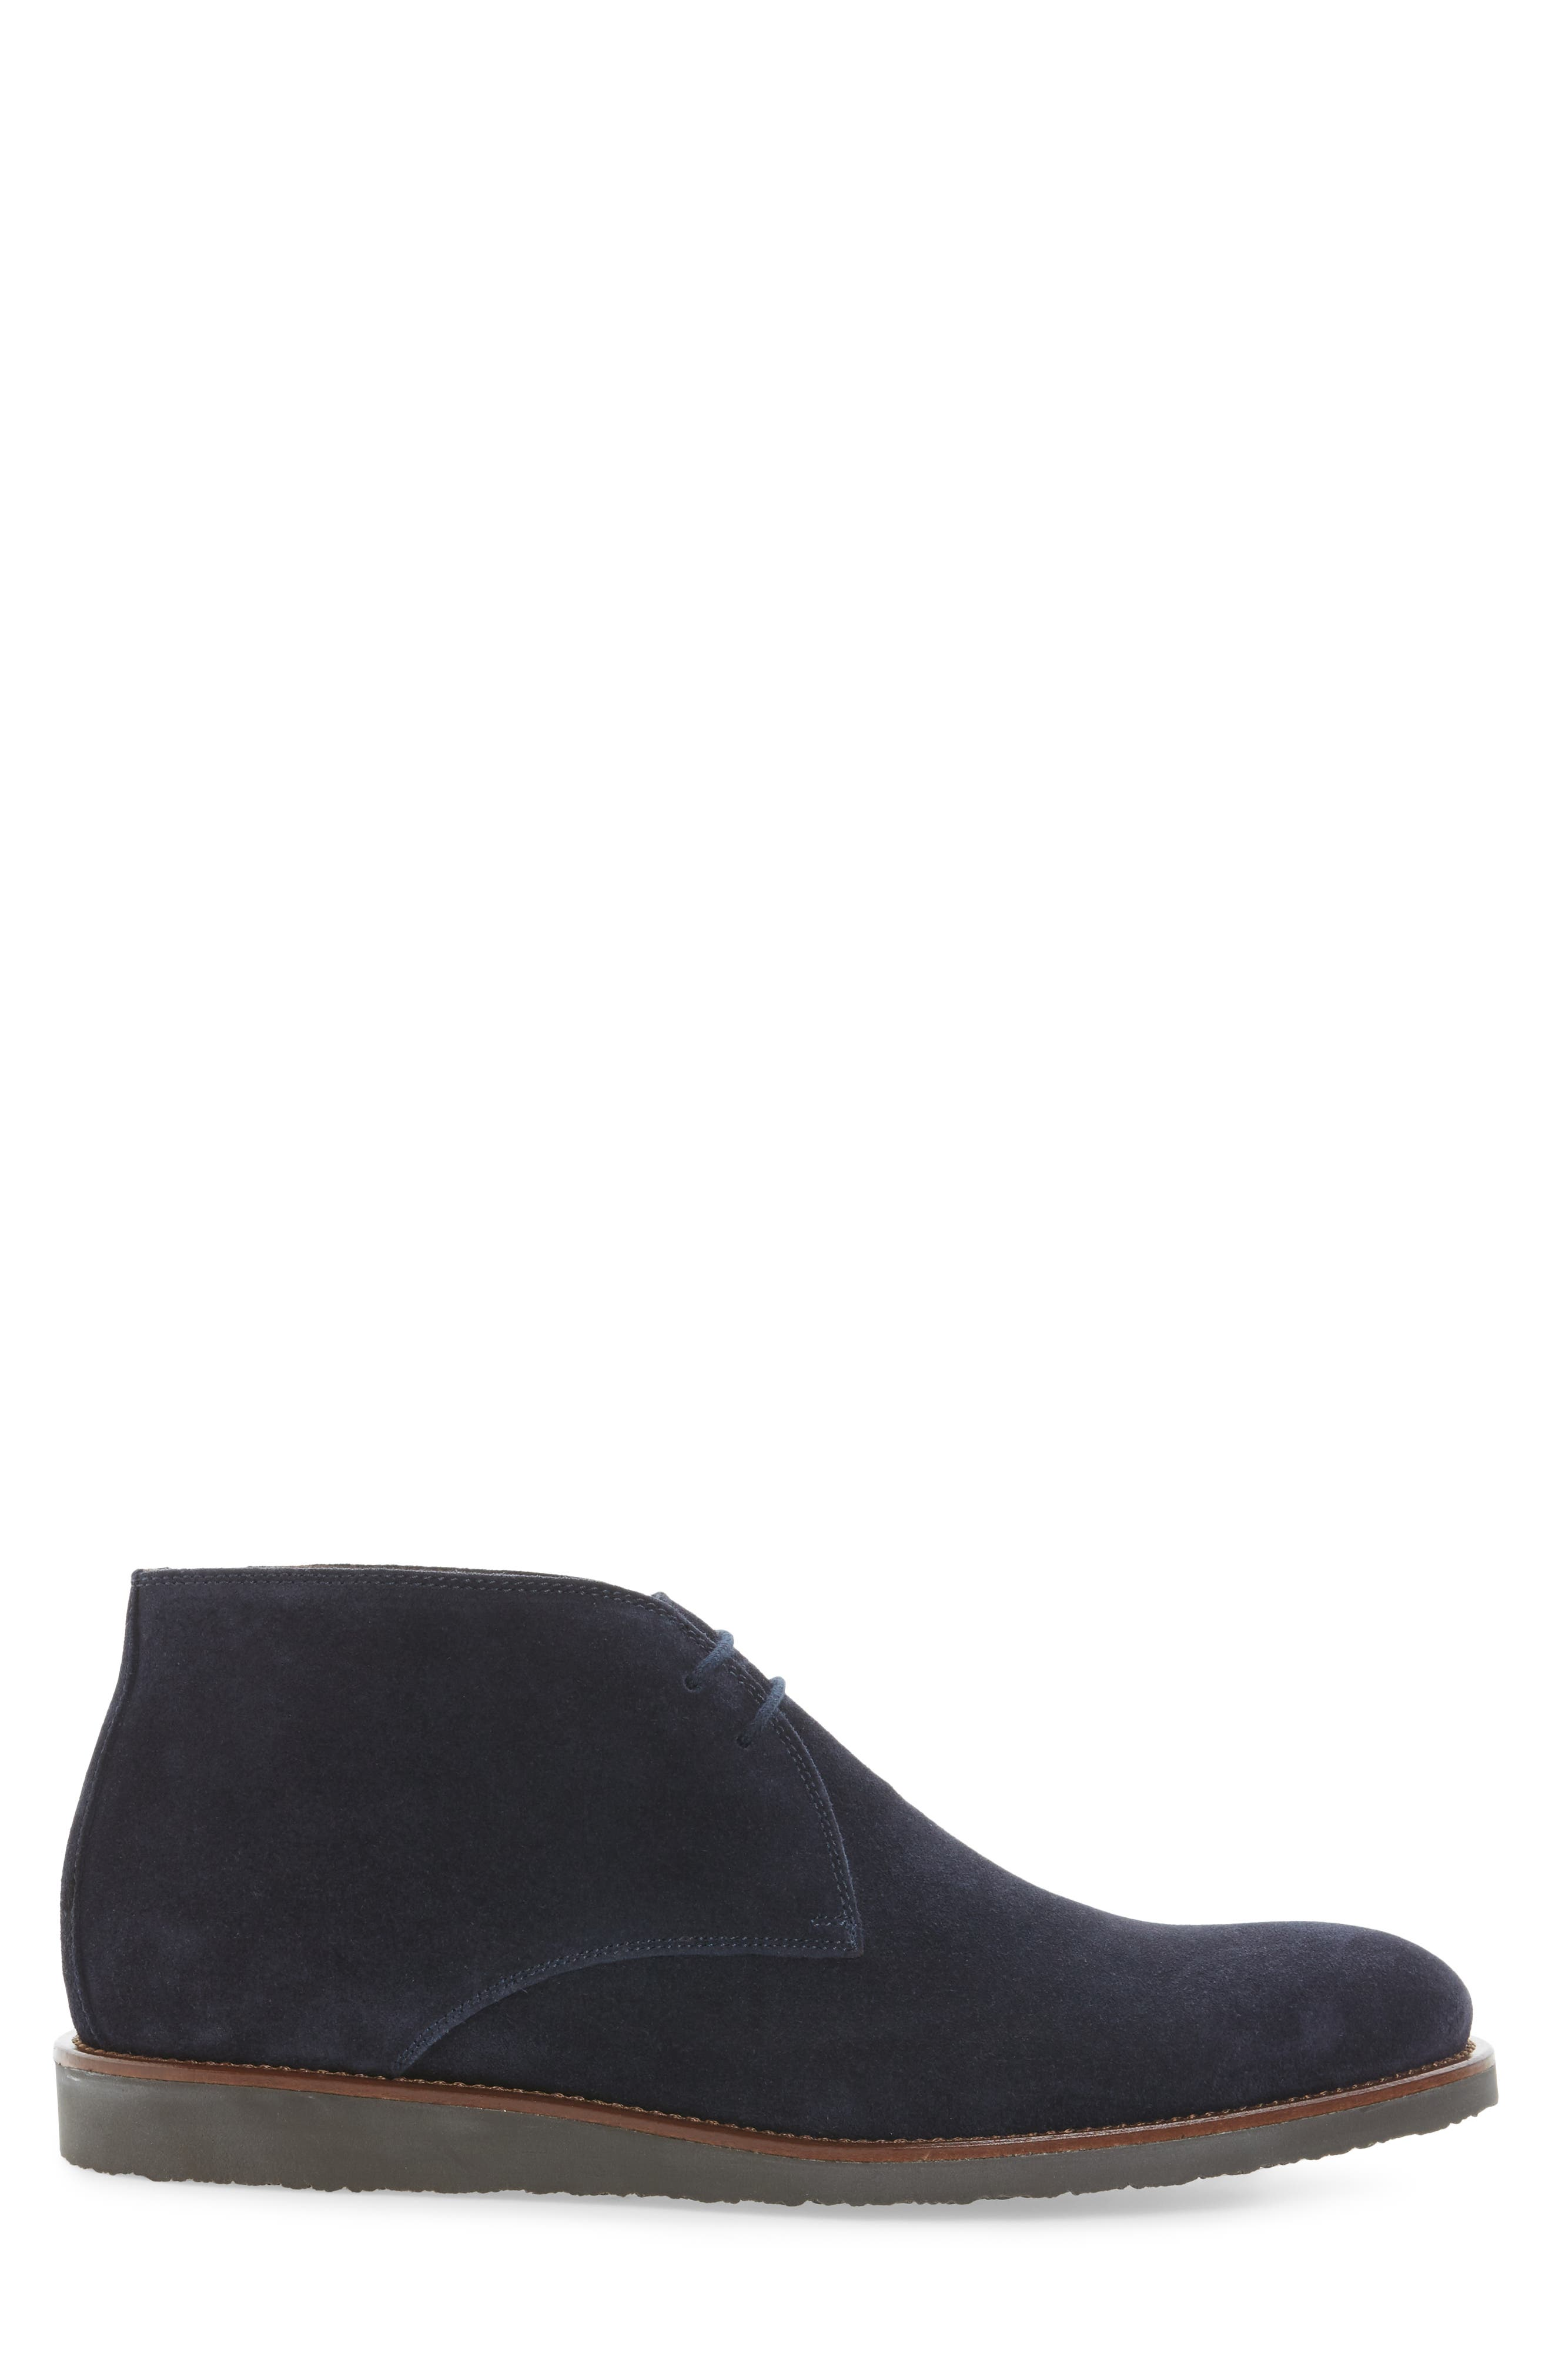 Franklin Chukka Boot,                             Alternate thumbnail 3, color,                             Blue Suede